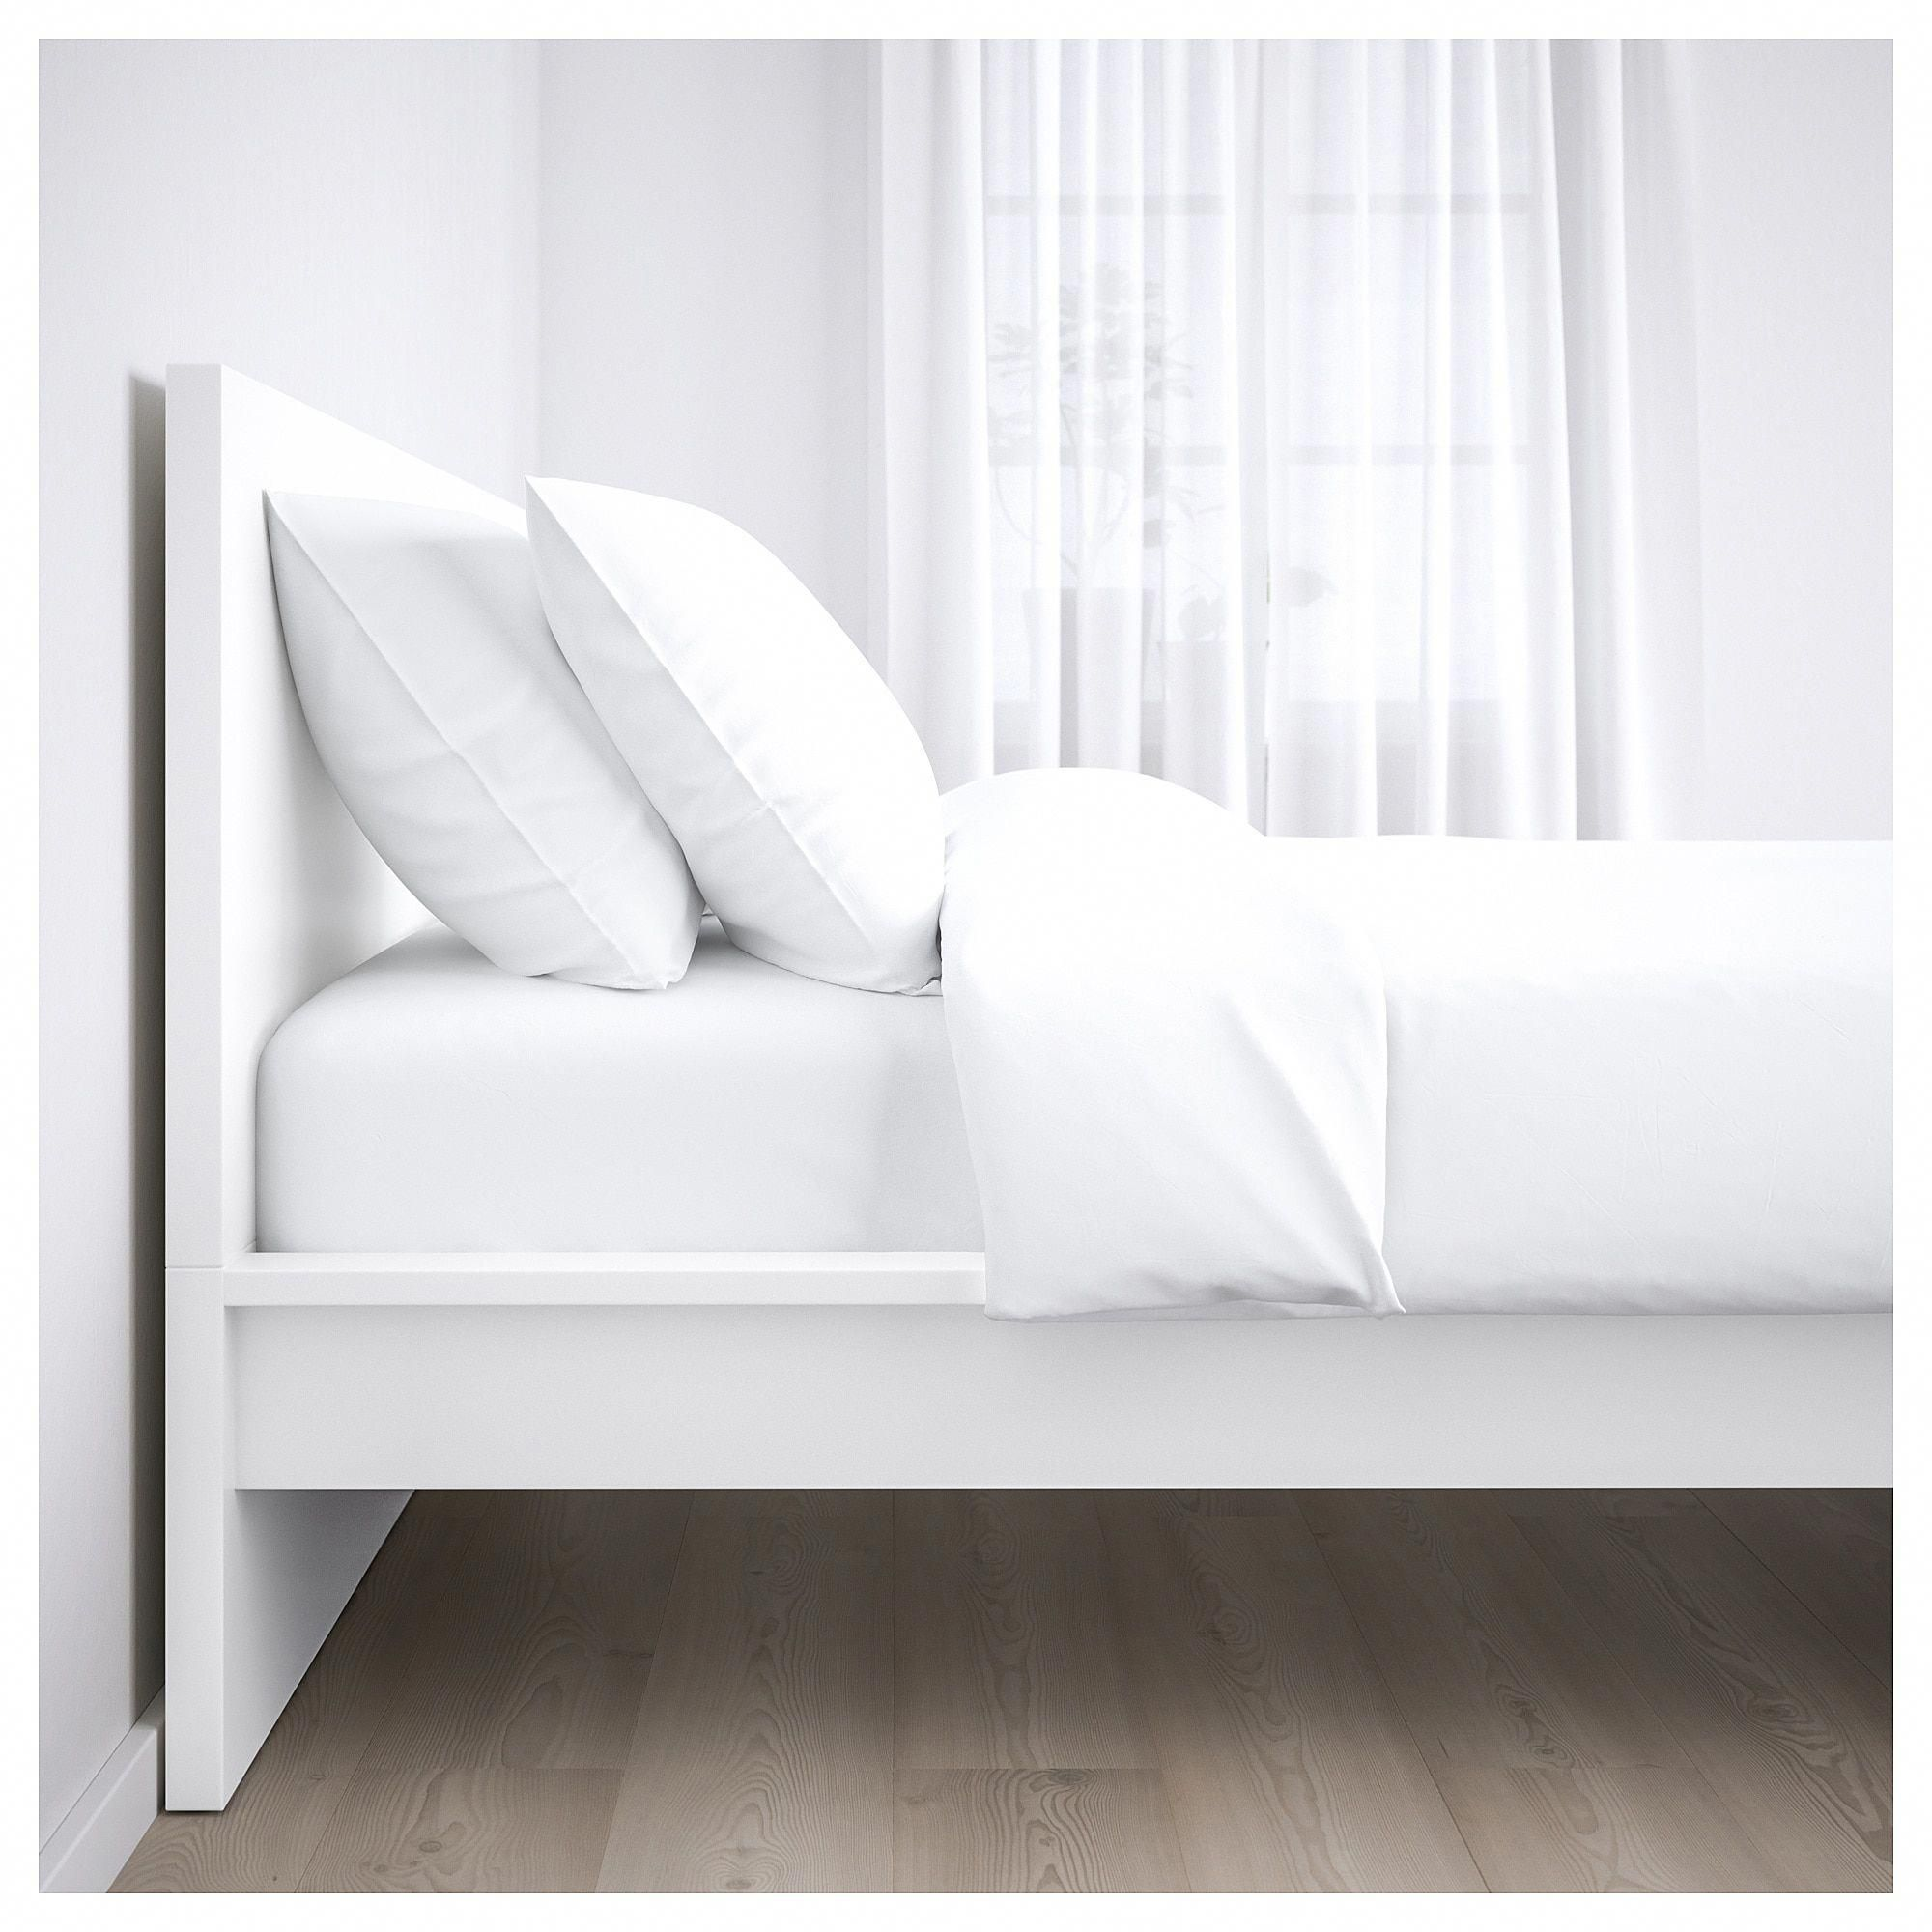 IKEA MALM White, Lönset Bed frame, high beds in 2020